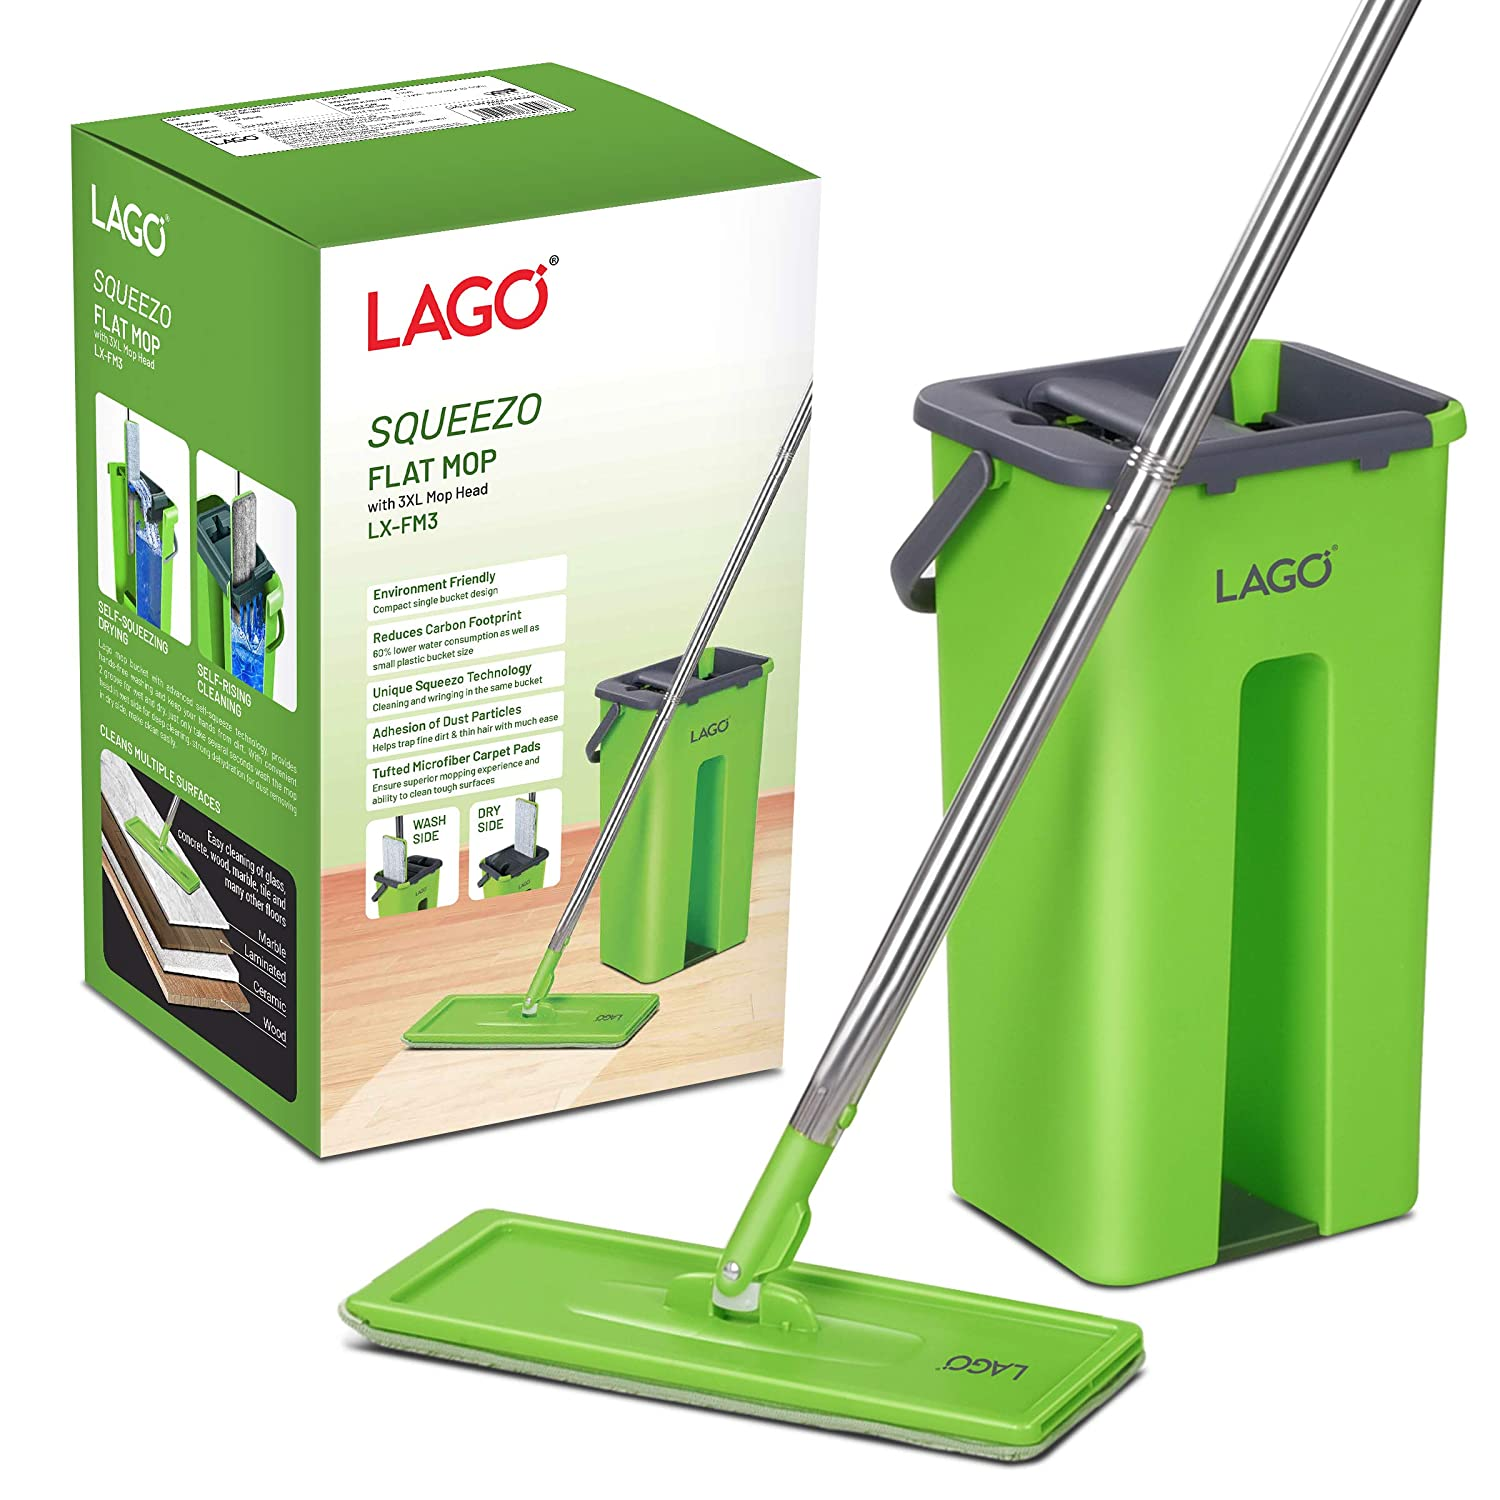 Best Flat Mop For Floor Cleaning